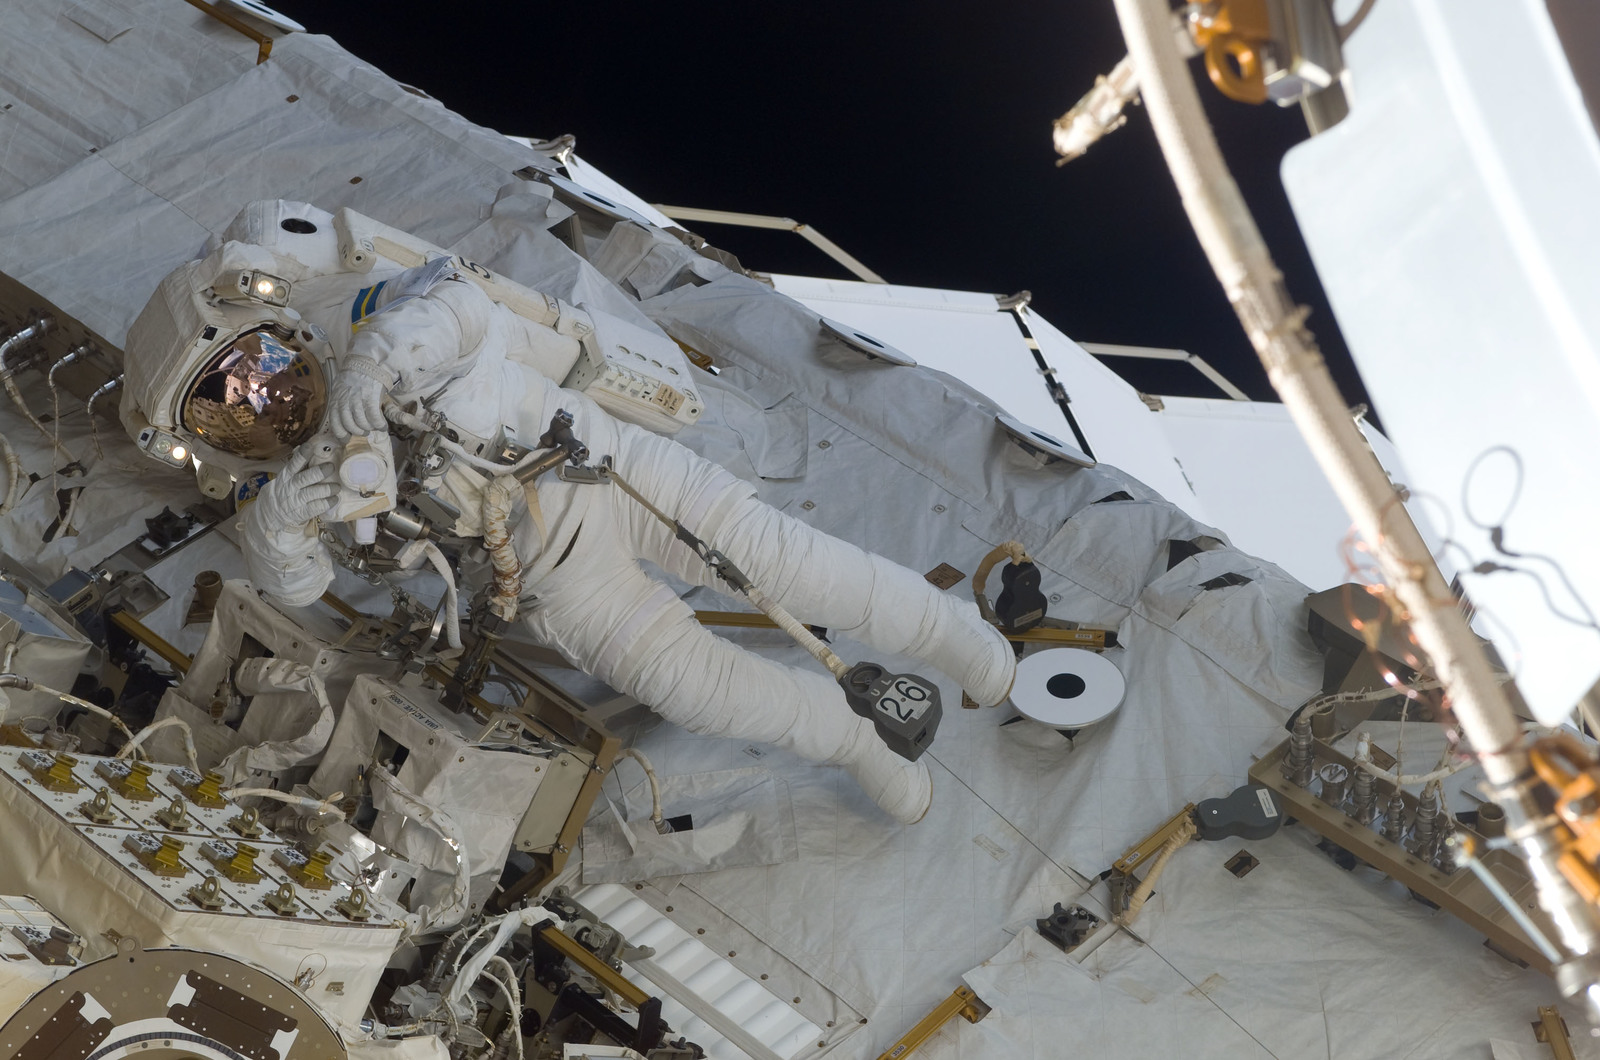 S116E06883 - STS-116 - STS-116 MS Fuglesang uses digital camera on the STBD side of the S0 Truss during EVA 4